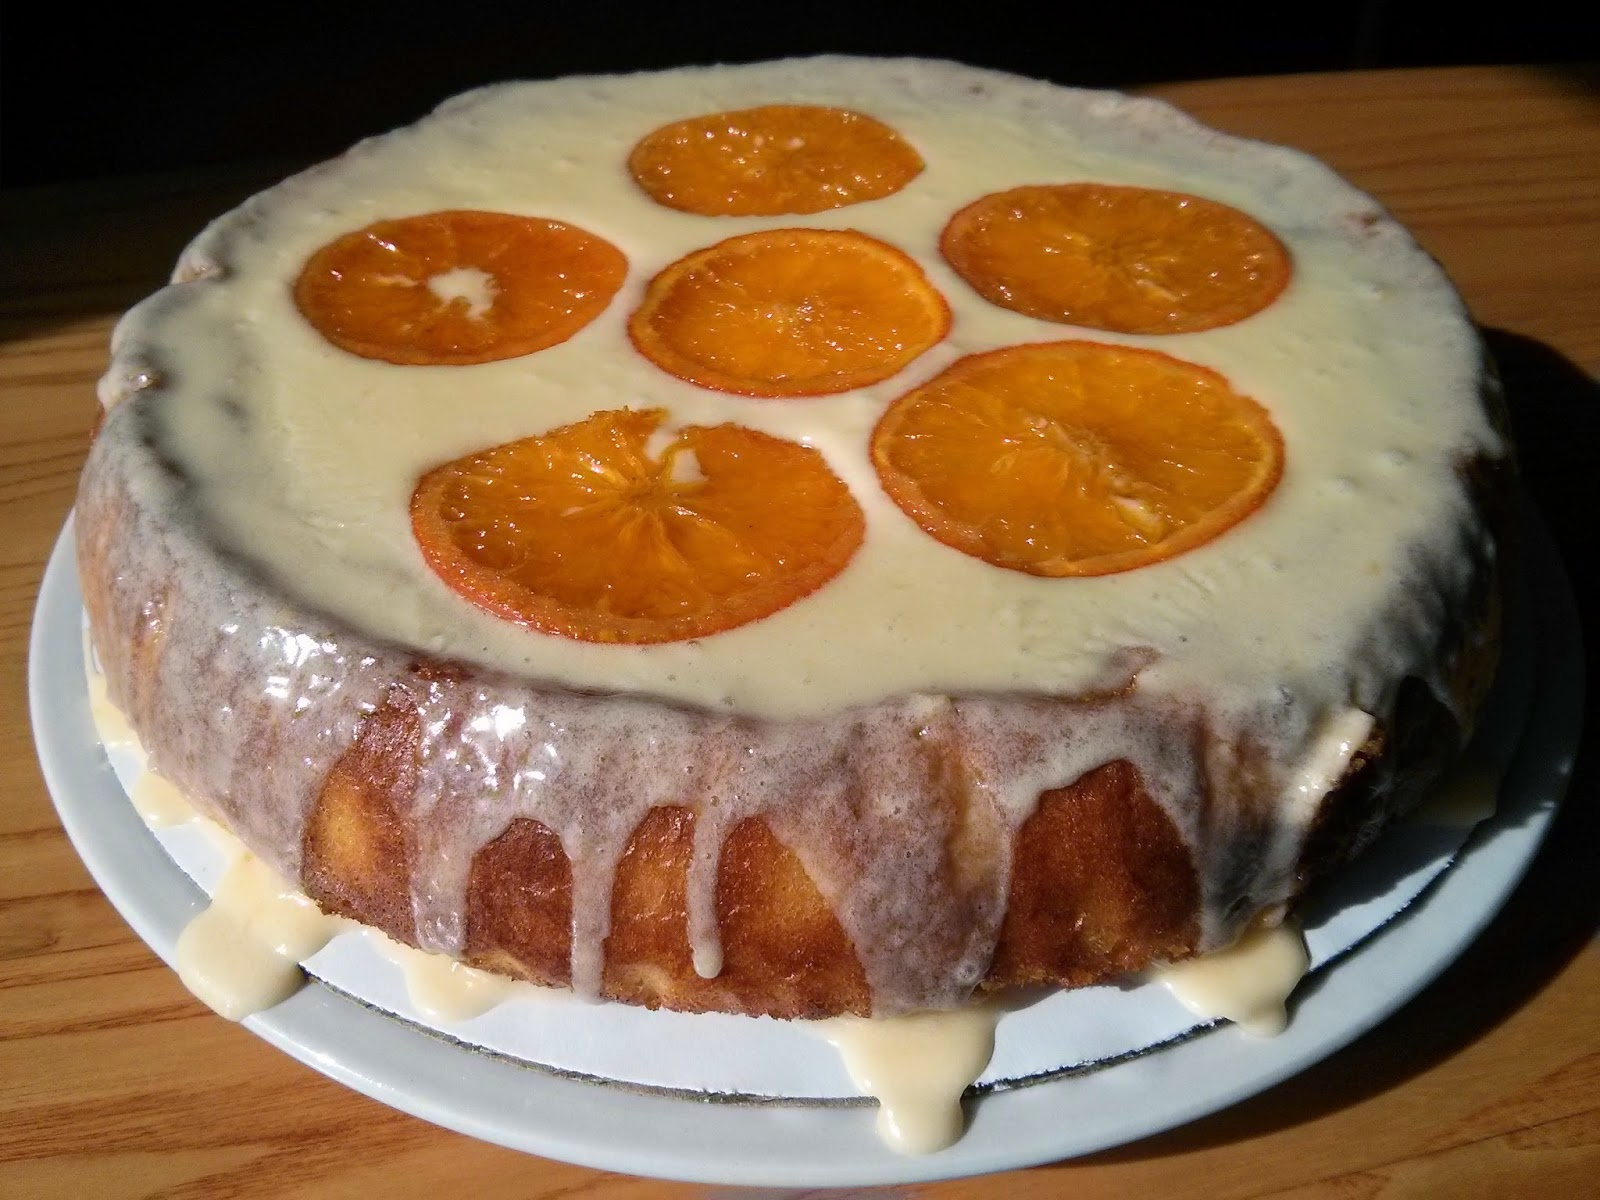 Crazy About Cakes: Walter Mitty Clementine Cake